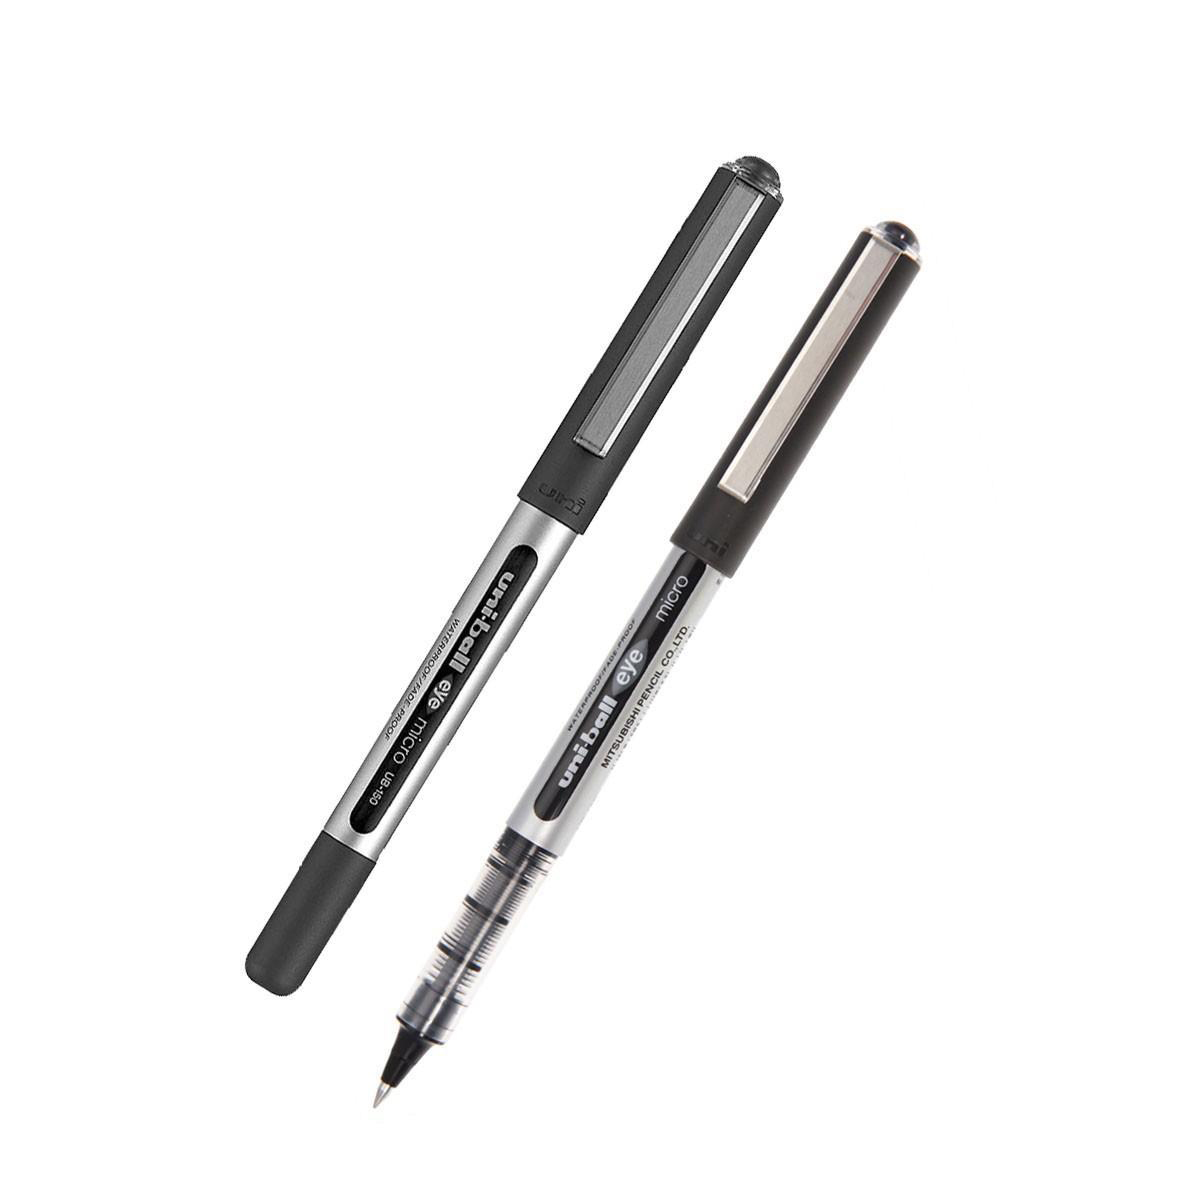 Uni-ball Eye UB150 Rollerball Pen Micro 0.5mm Tip 0.3mm Line Black Ref 162545000 [Pack 12]